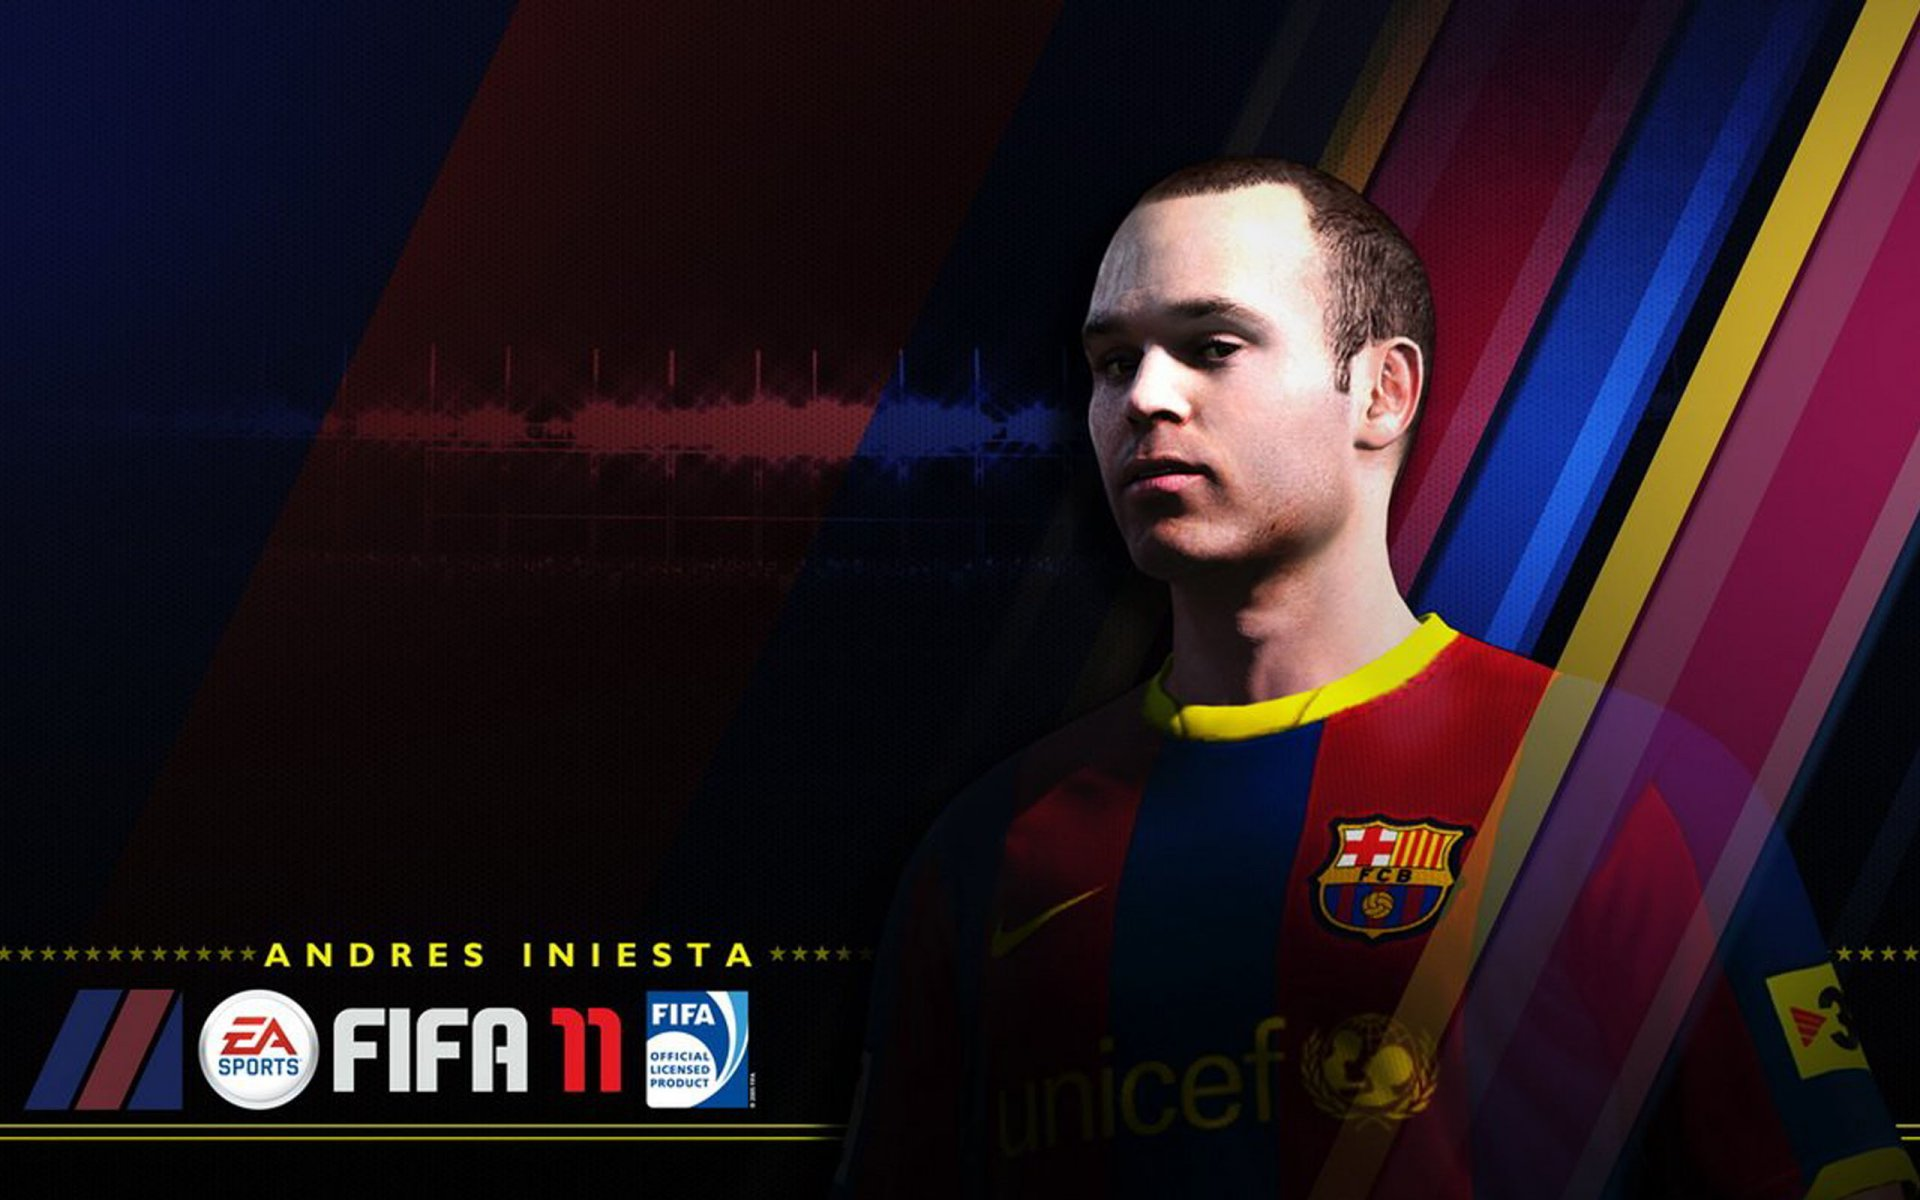 iniesta wallpapers (52)